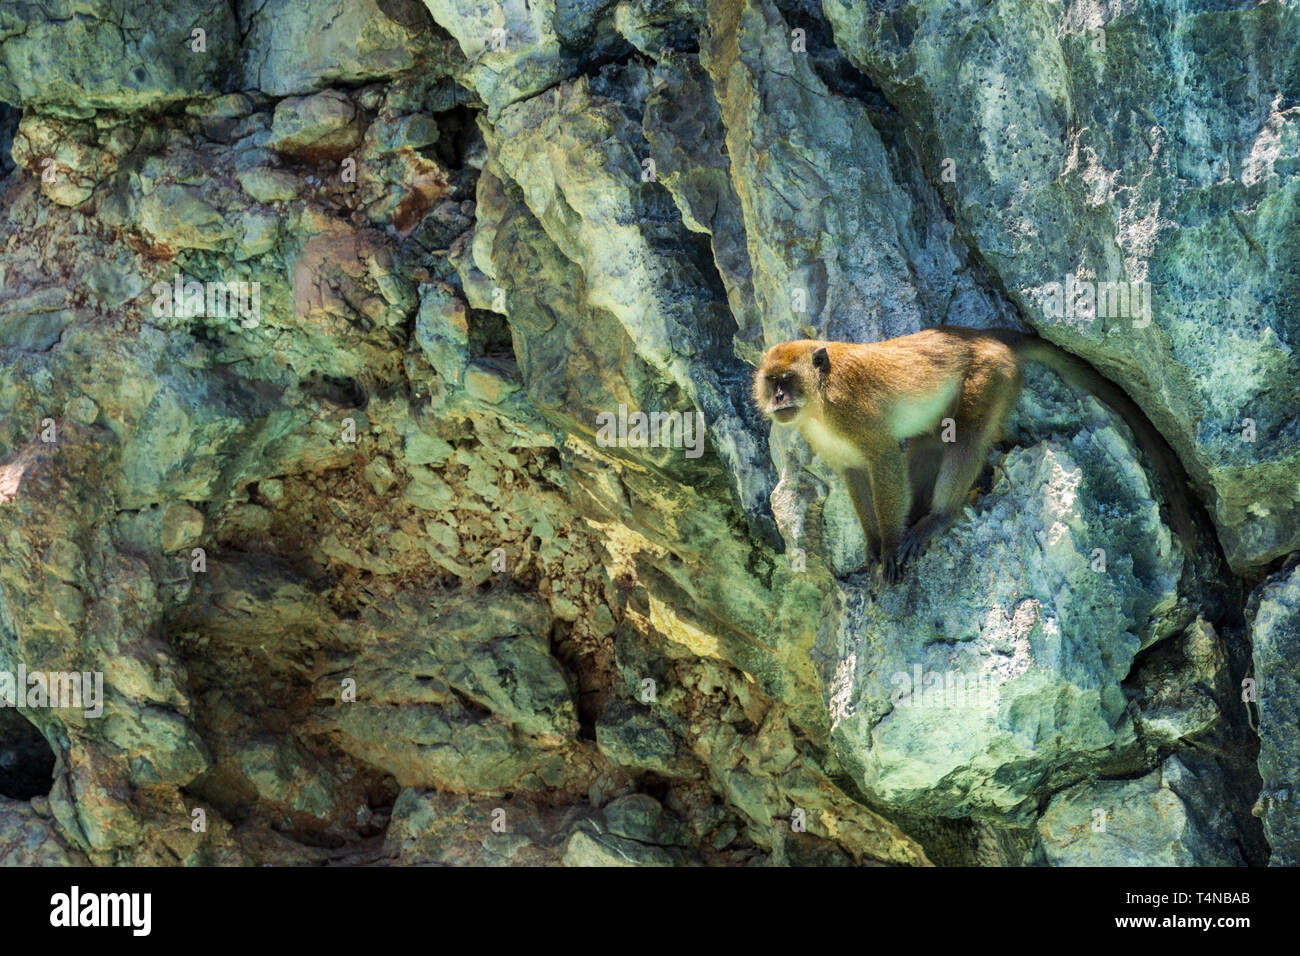 Adult big monkey, Rhesus Macaque, sitting on the cliff and guarding the pack, isolated on rocky background Stock Photo